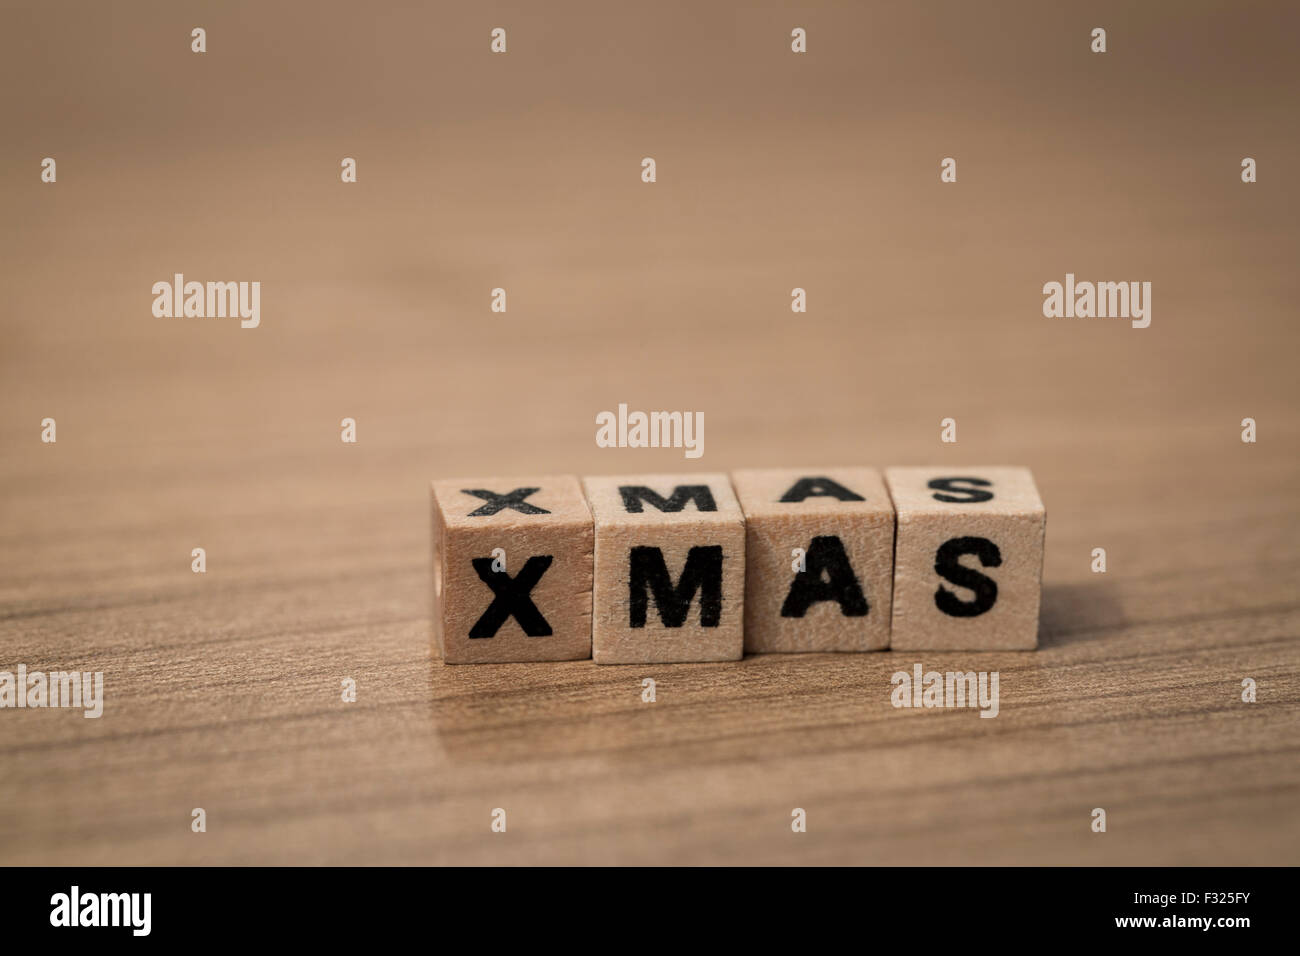 X-Mas written in wooden cubes on a desk - Stock Image